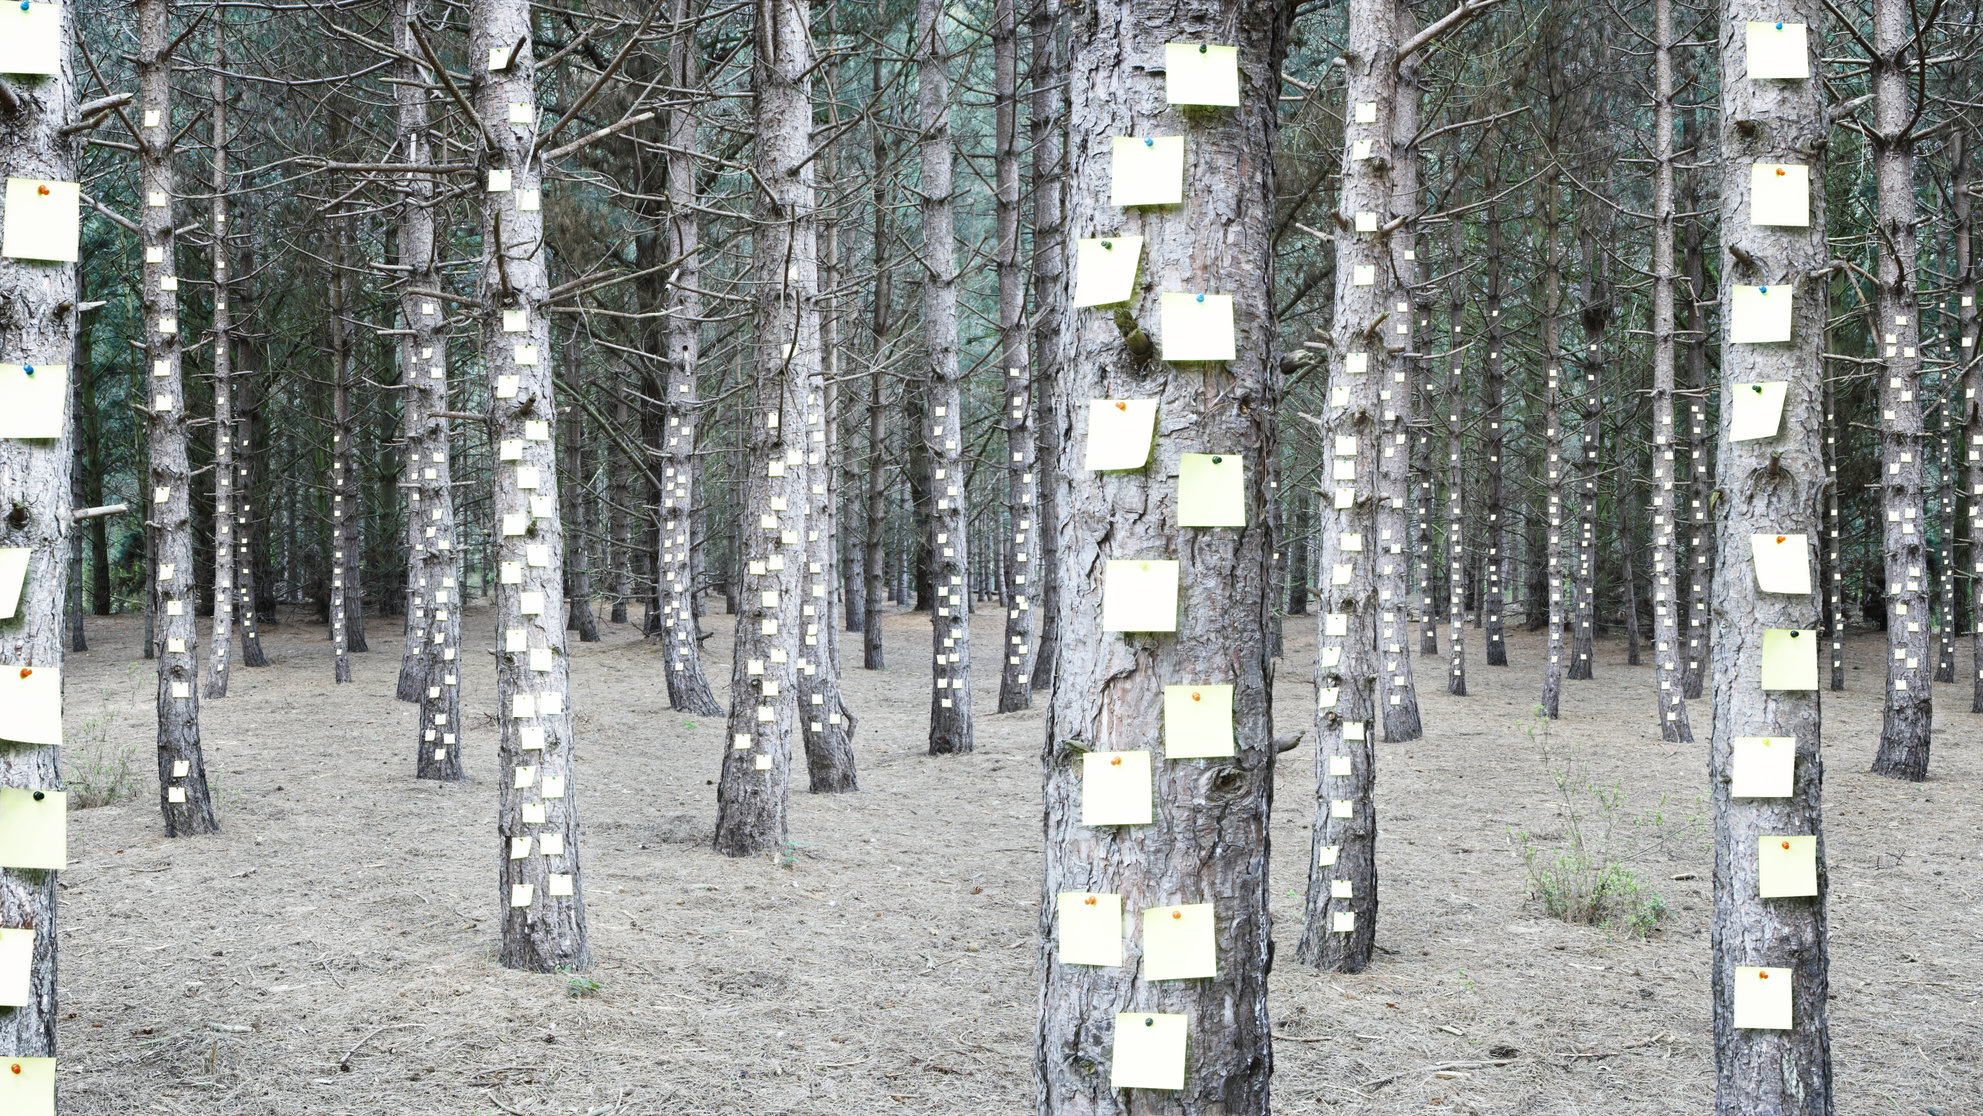 alzheimer-memory-post-it-notes-trees-forest